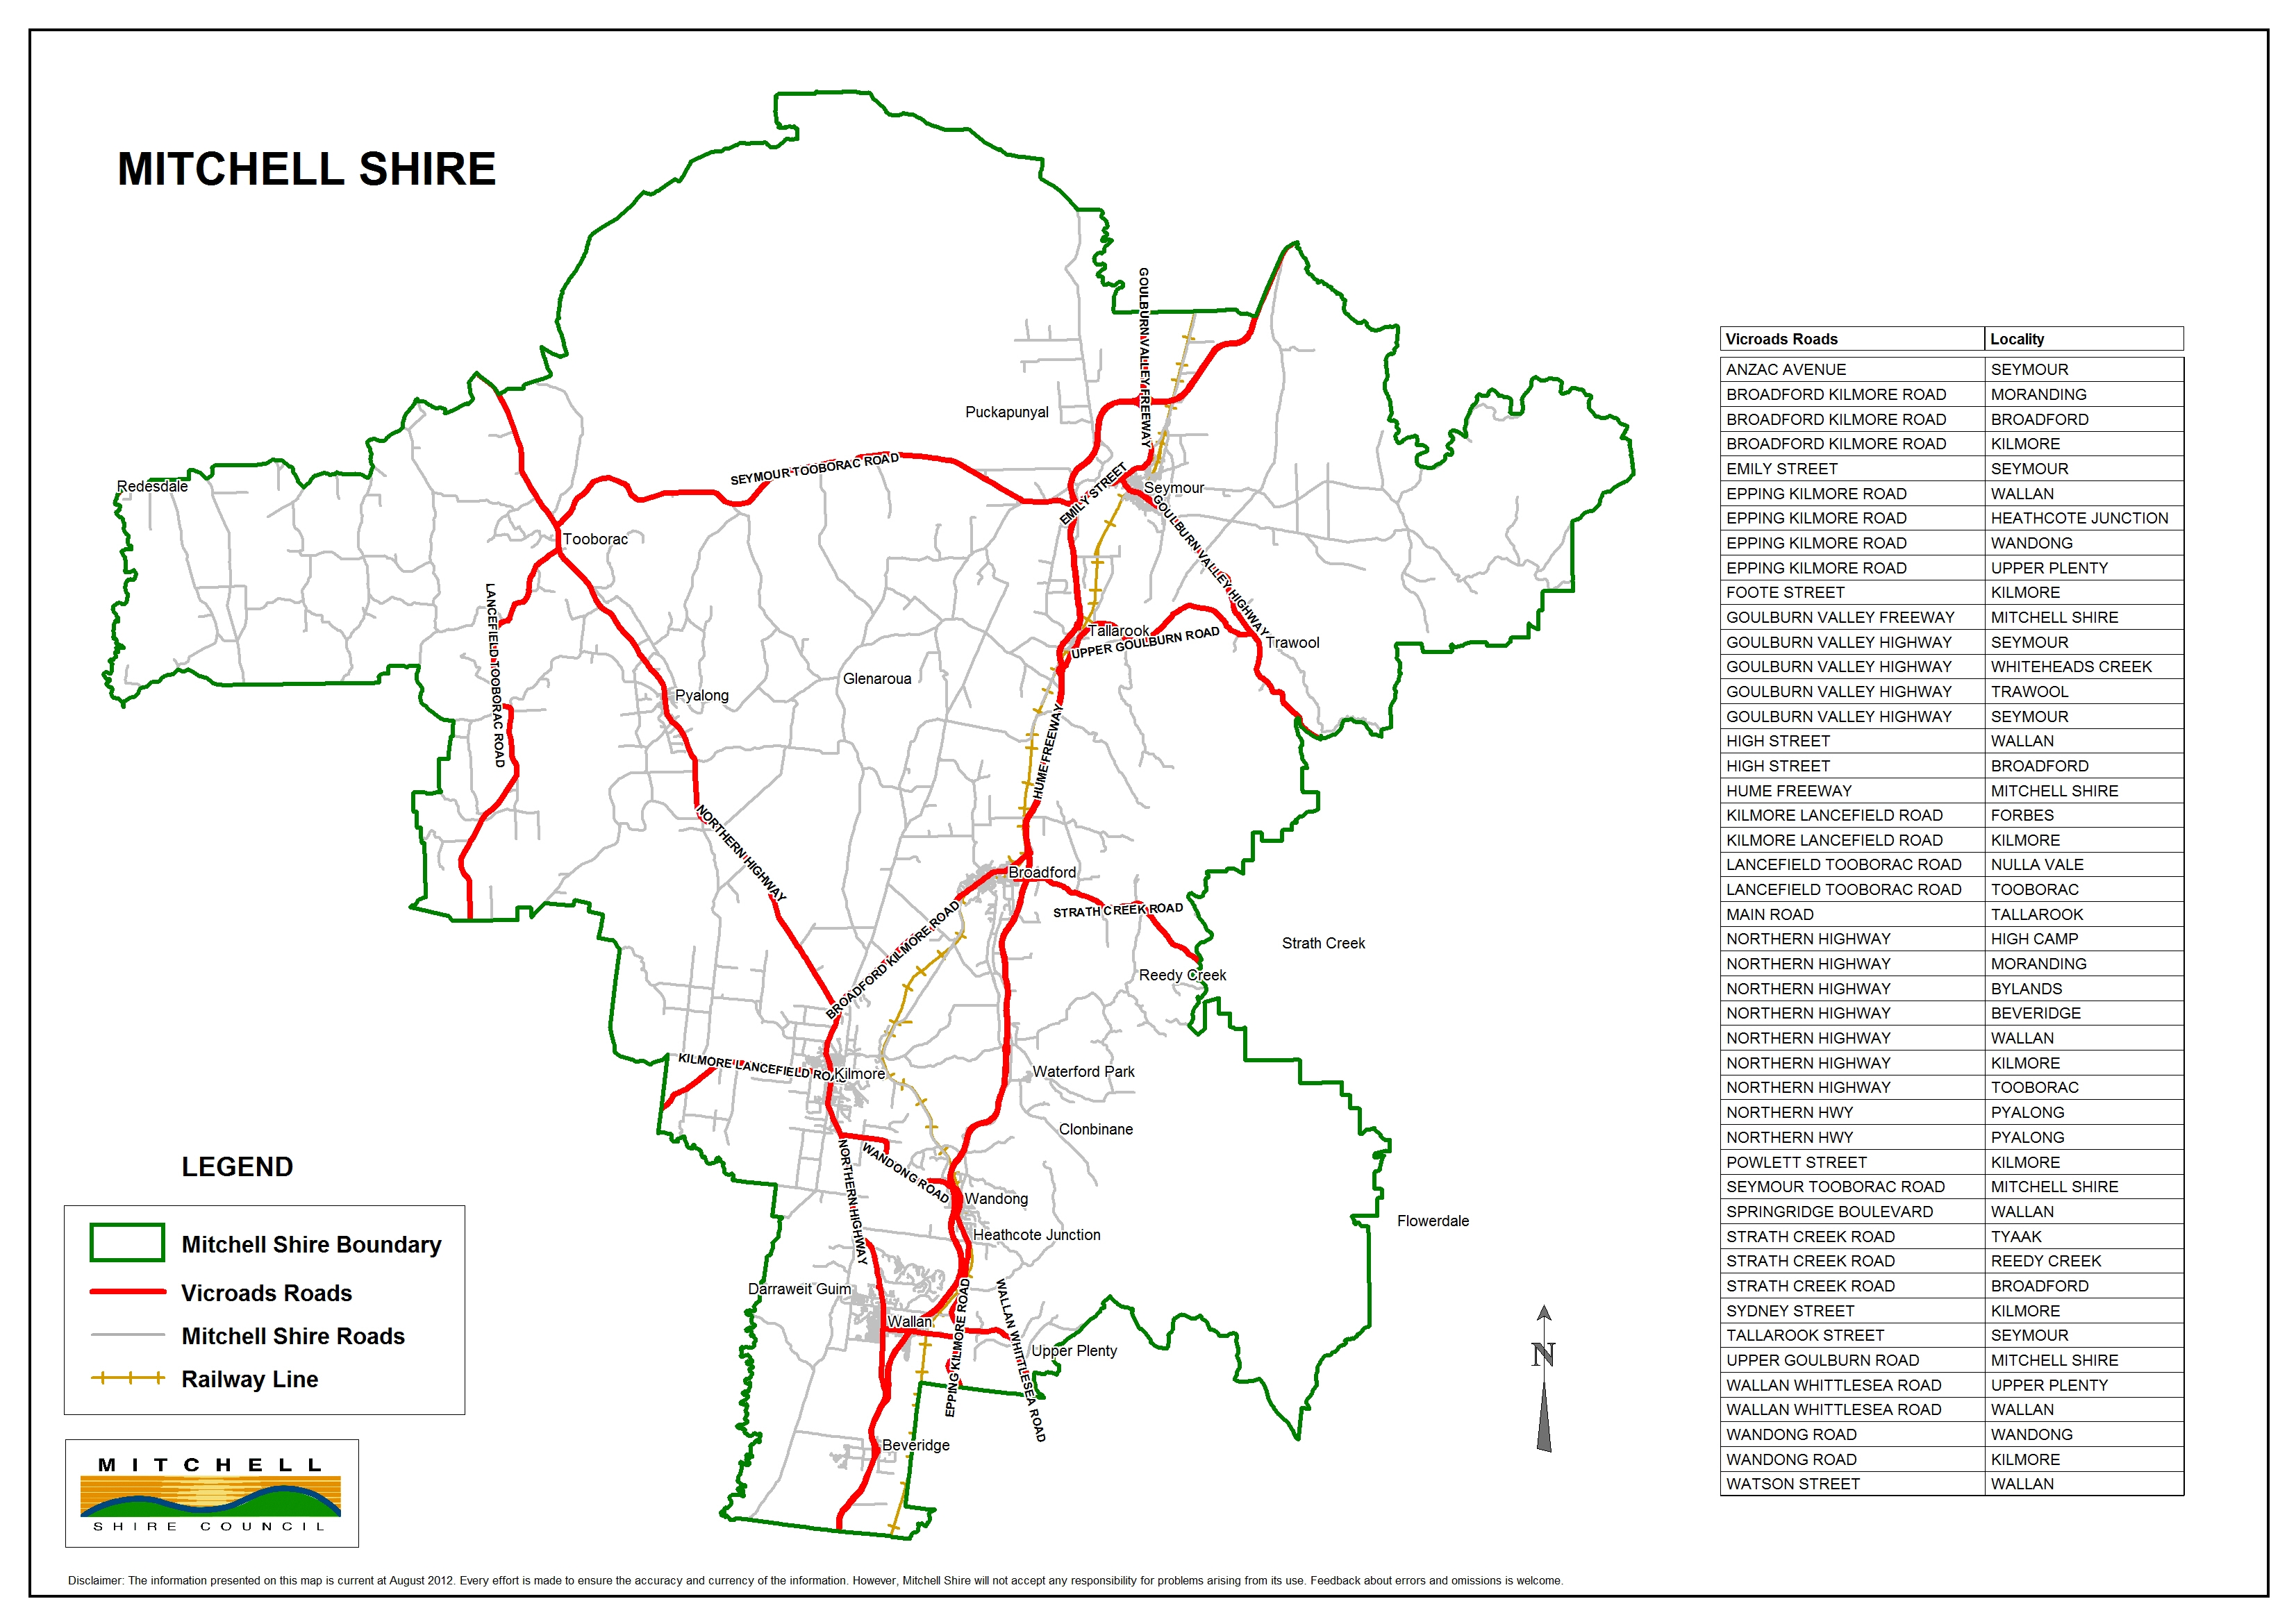 Vic roads maps